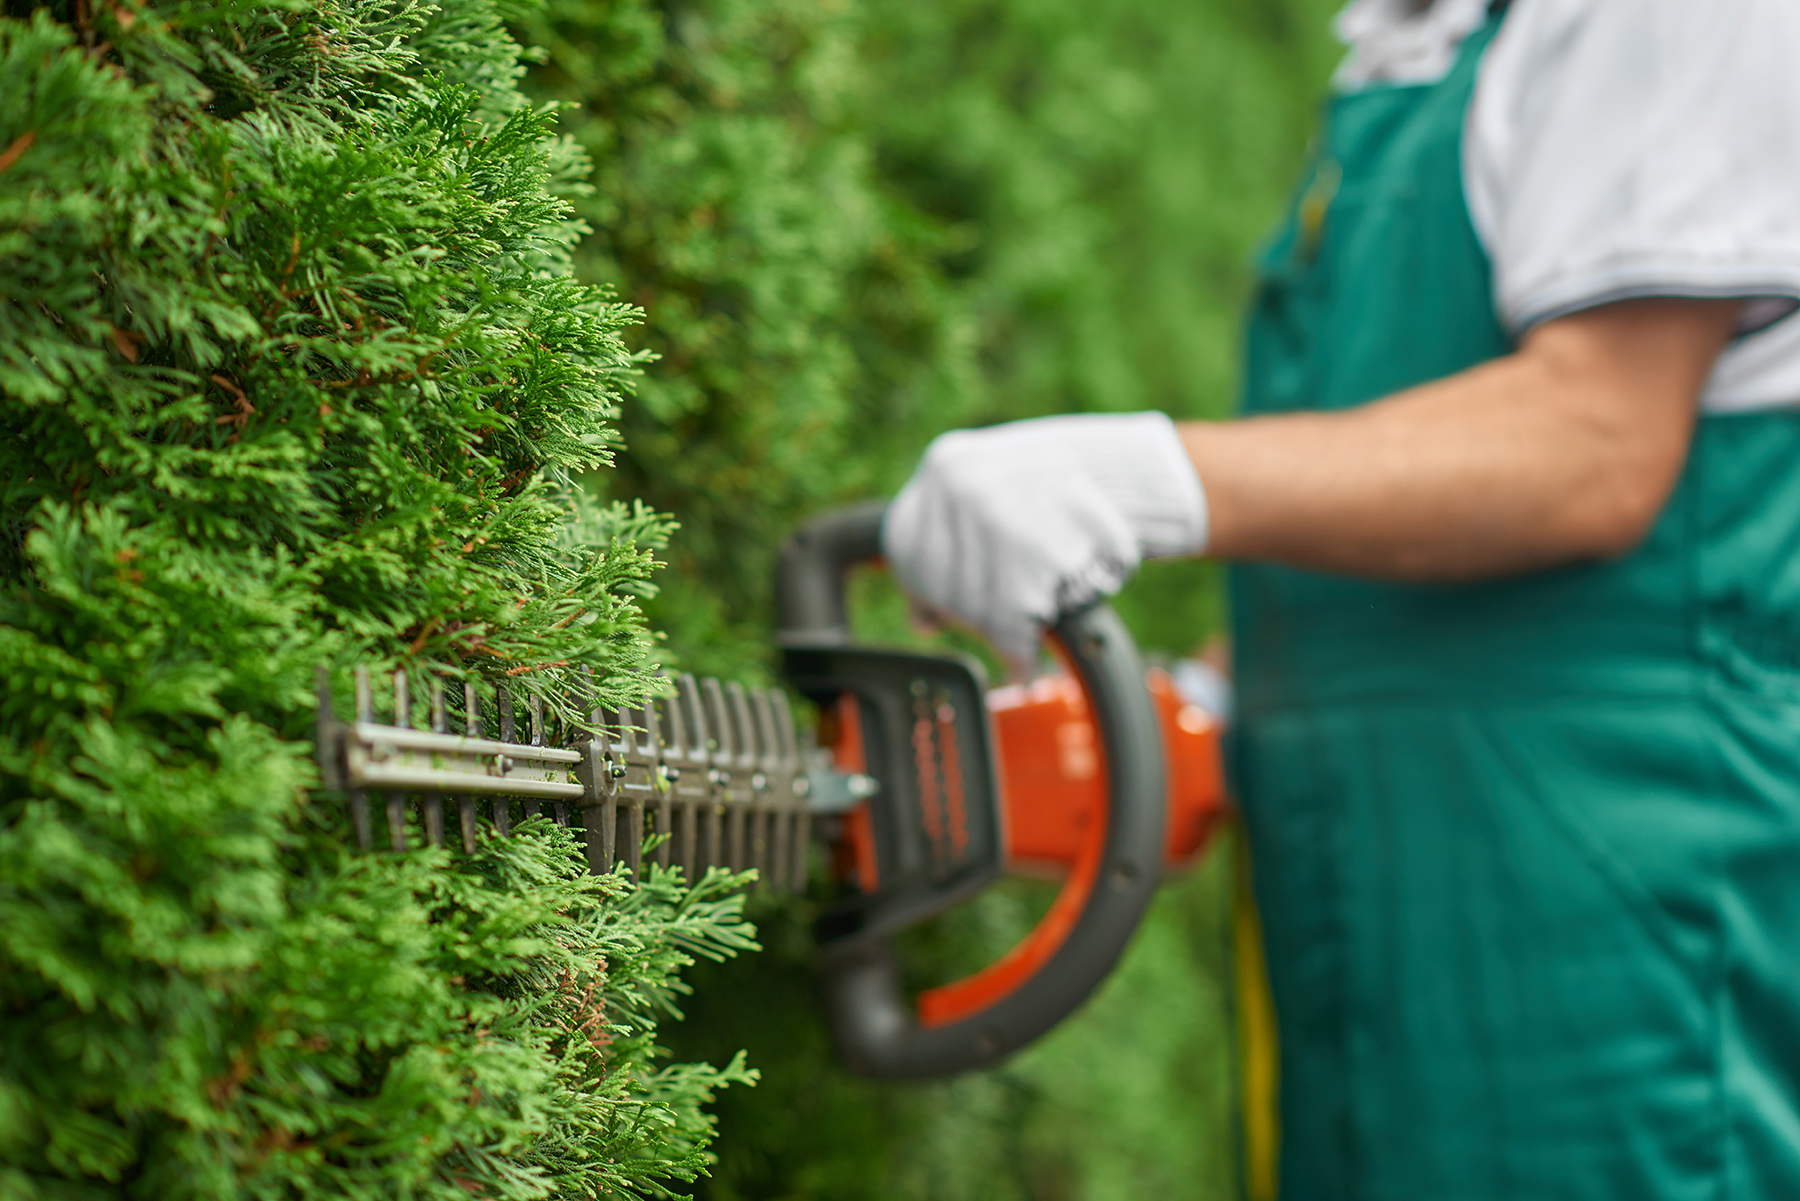 Tree and Hedge Trimming By Professionals Who Really Care